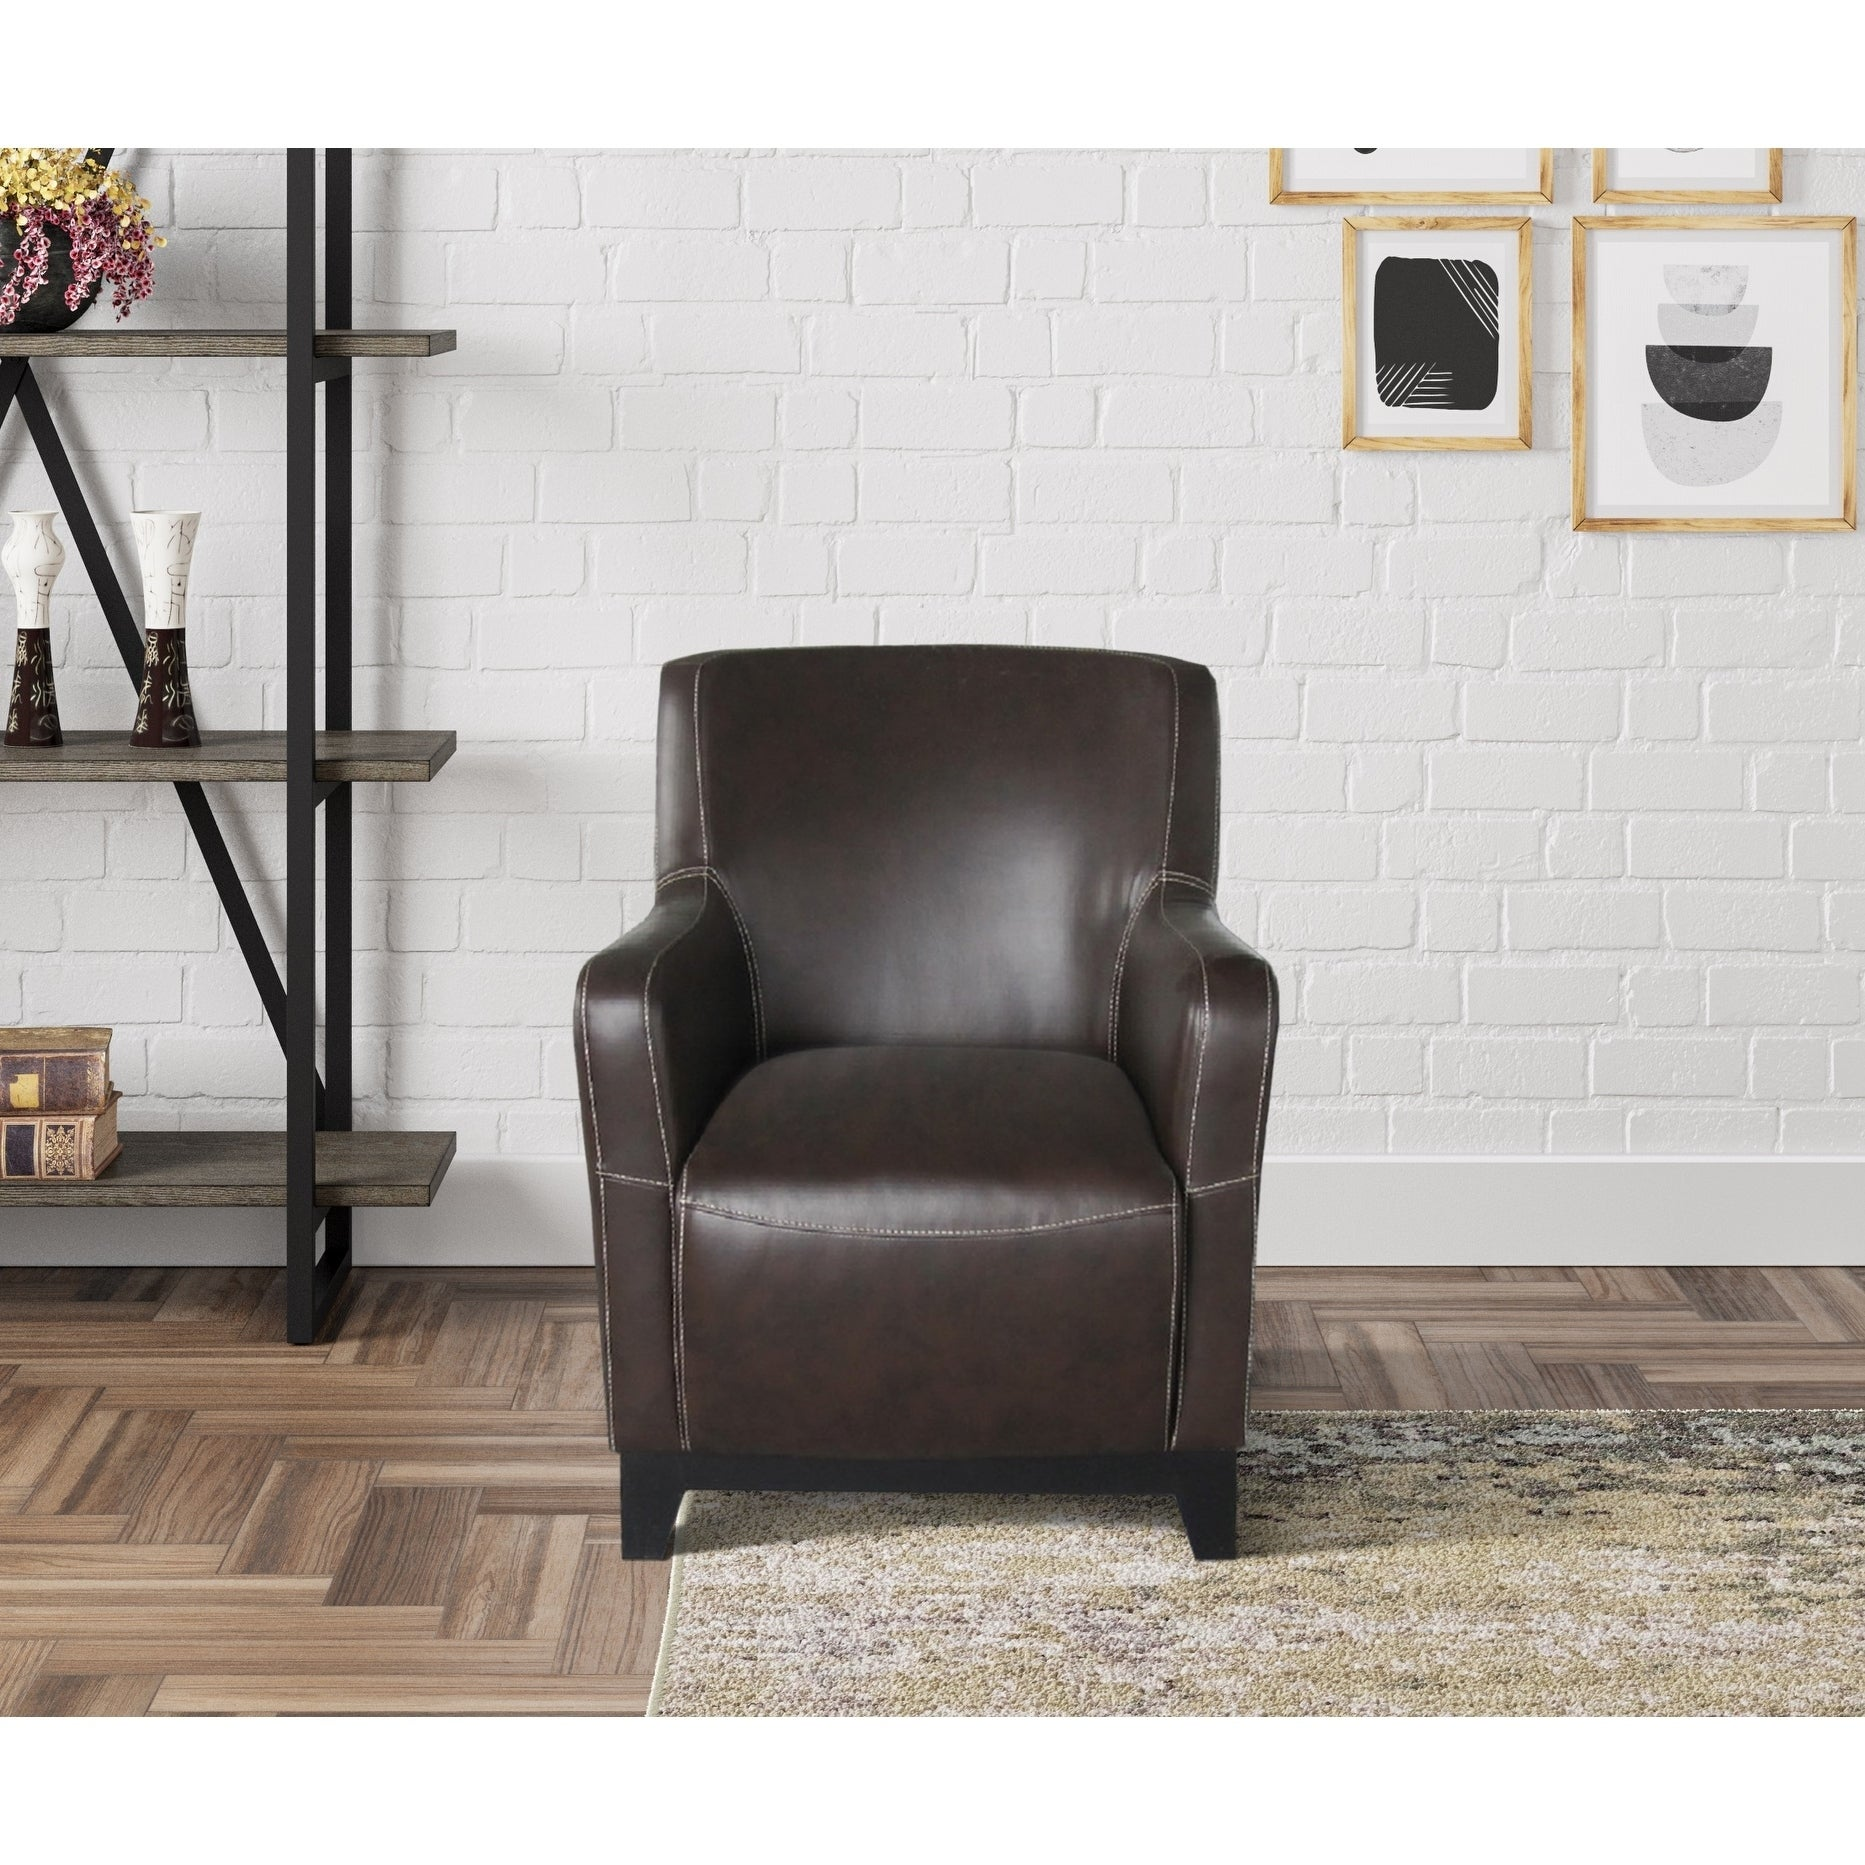 Emerald Home Amanda Brown Accent Chair (Bonded Leather)